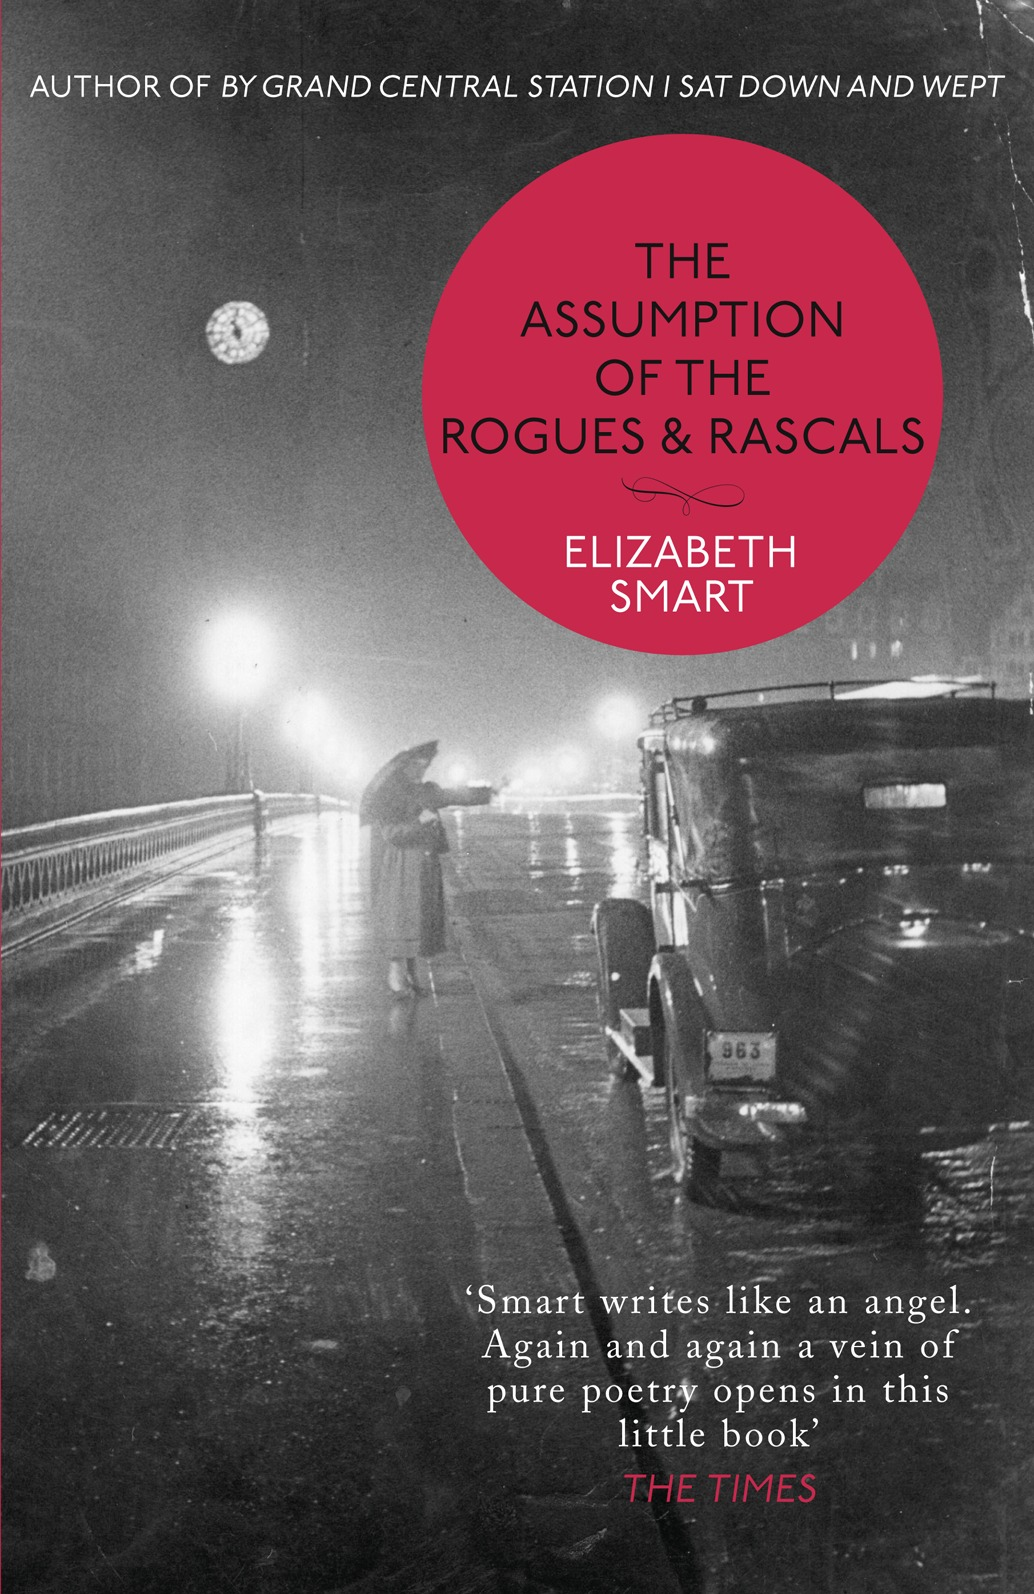 Elizabeth Smart The Assumption of the Rogues & Rascals contract as assumption